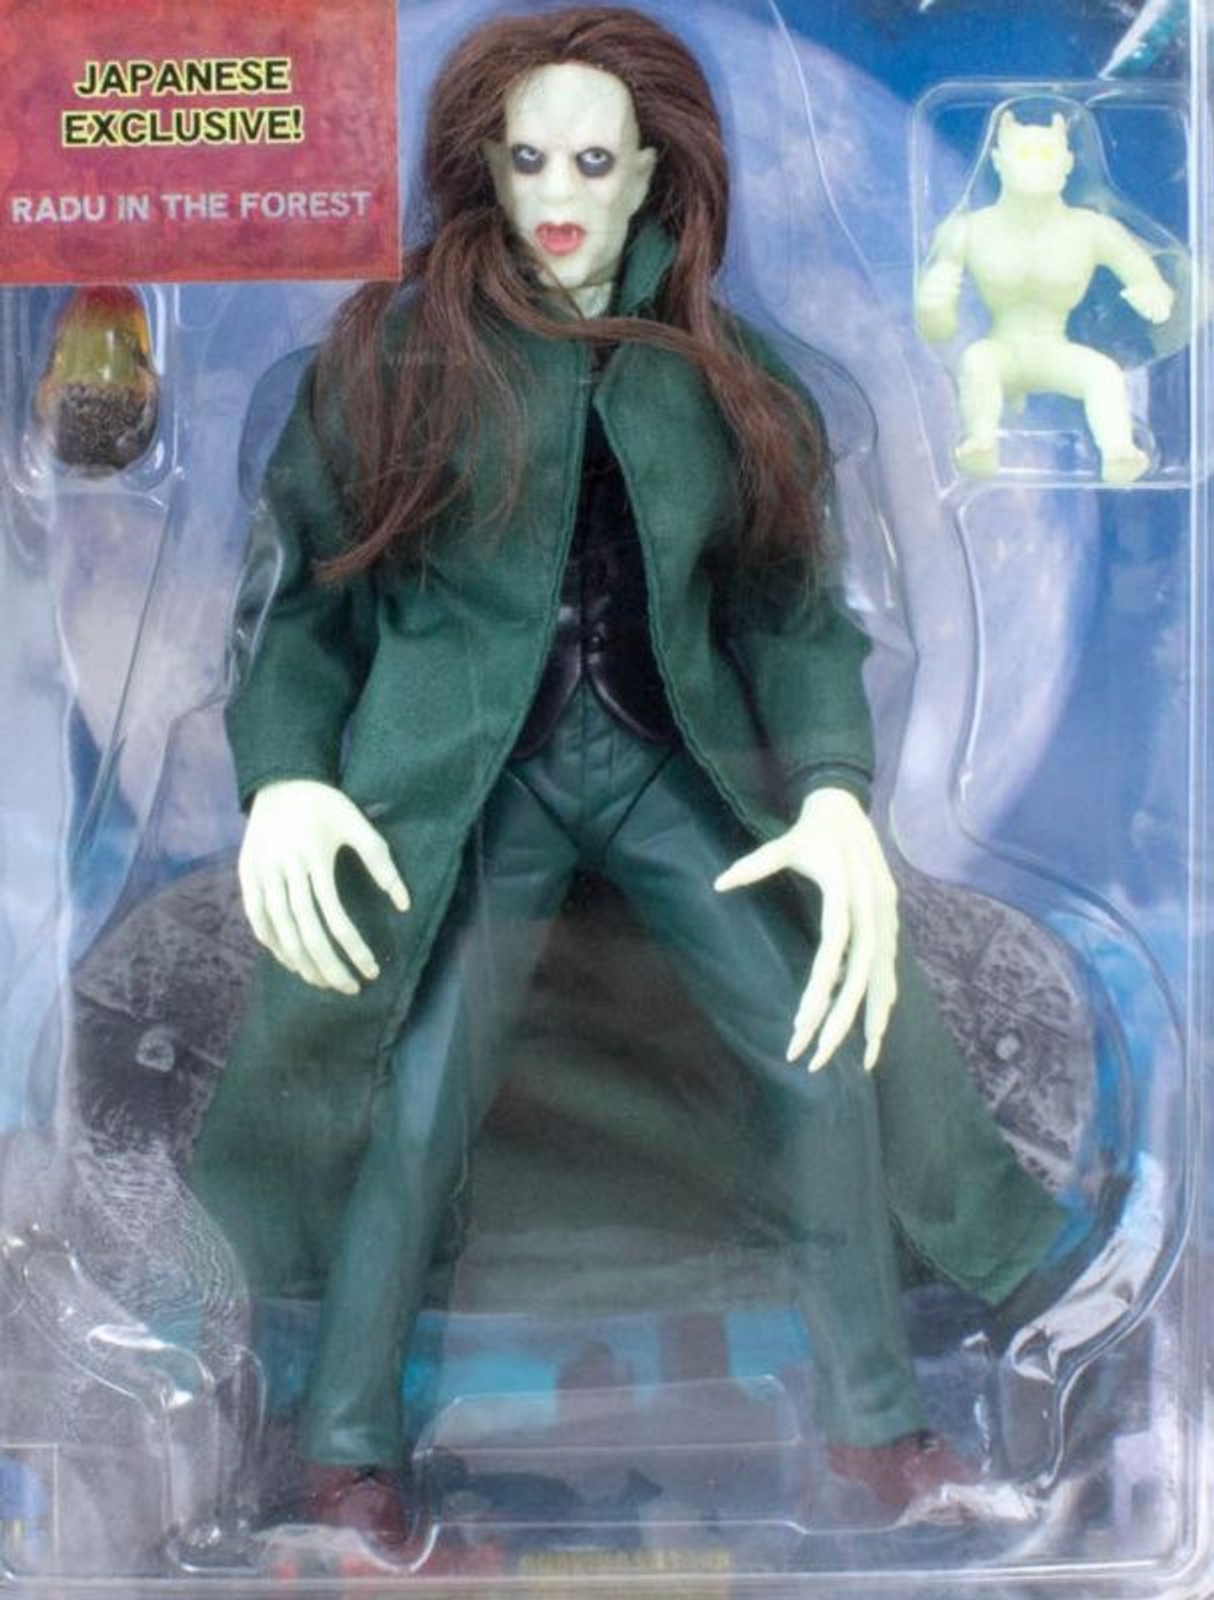 RADU Action Figure in the Forest Japanese Exclusive Full Moon Toys